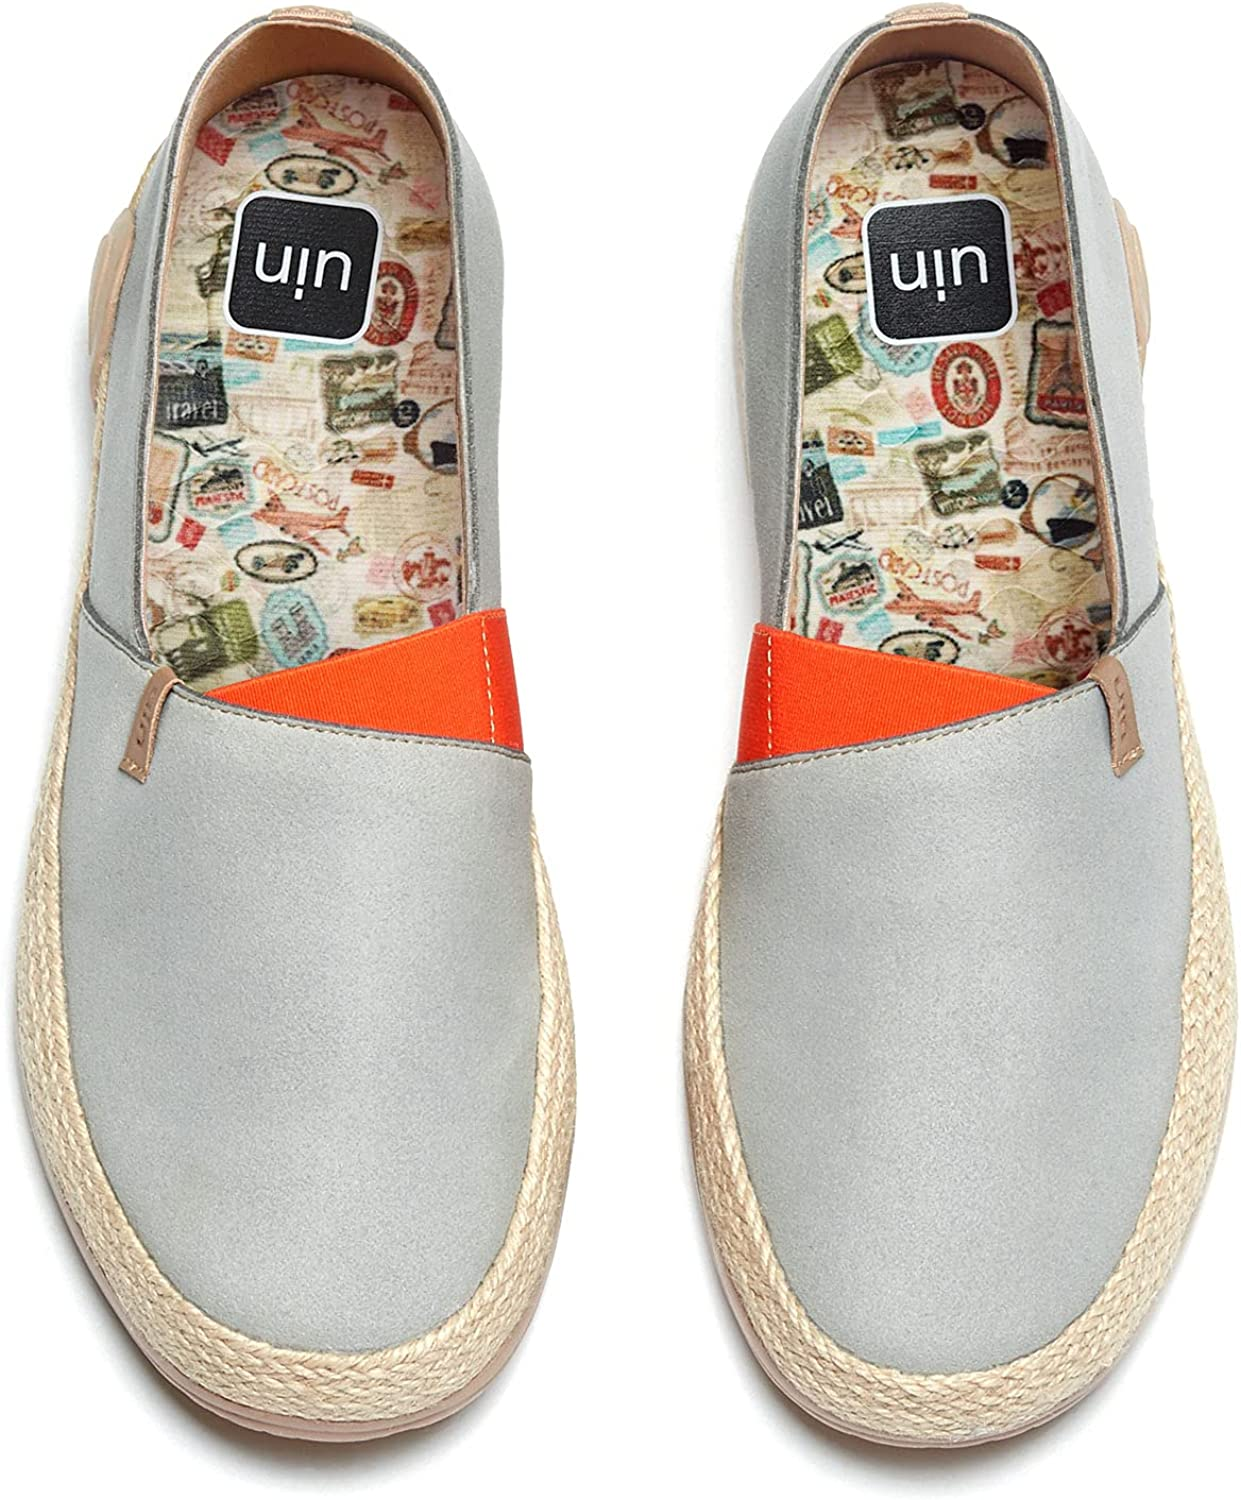 UIN Men's Espadrilles Slip Ons Canvas Lightweight Walking Casual Loafers Comfortable Art Painted Travel Shoes Marbella